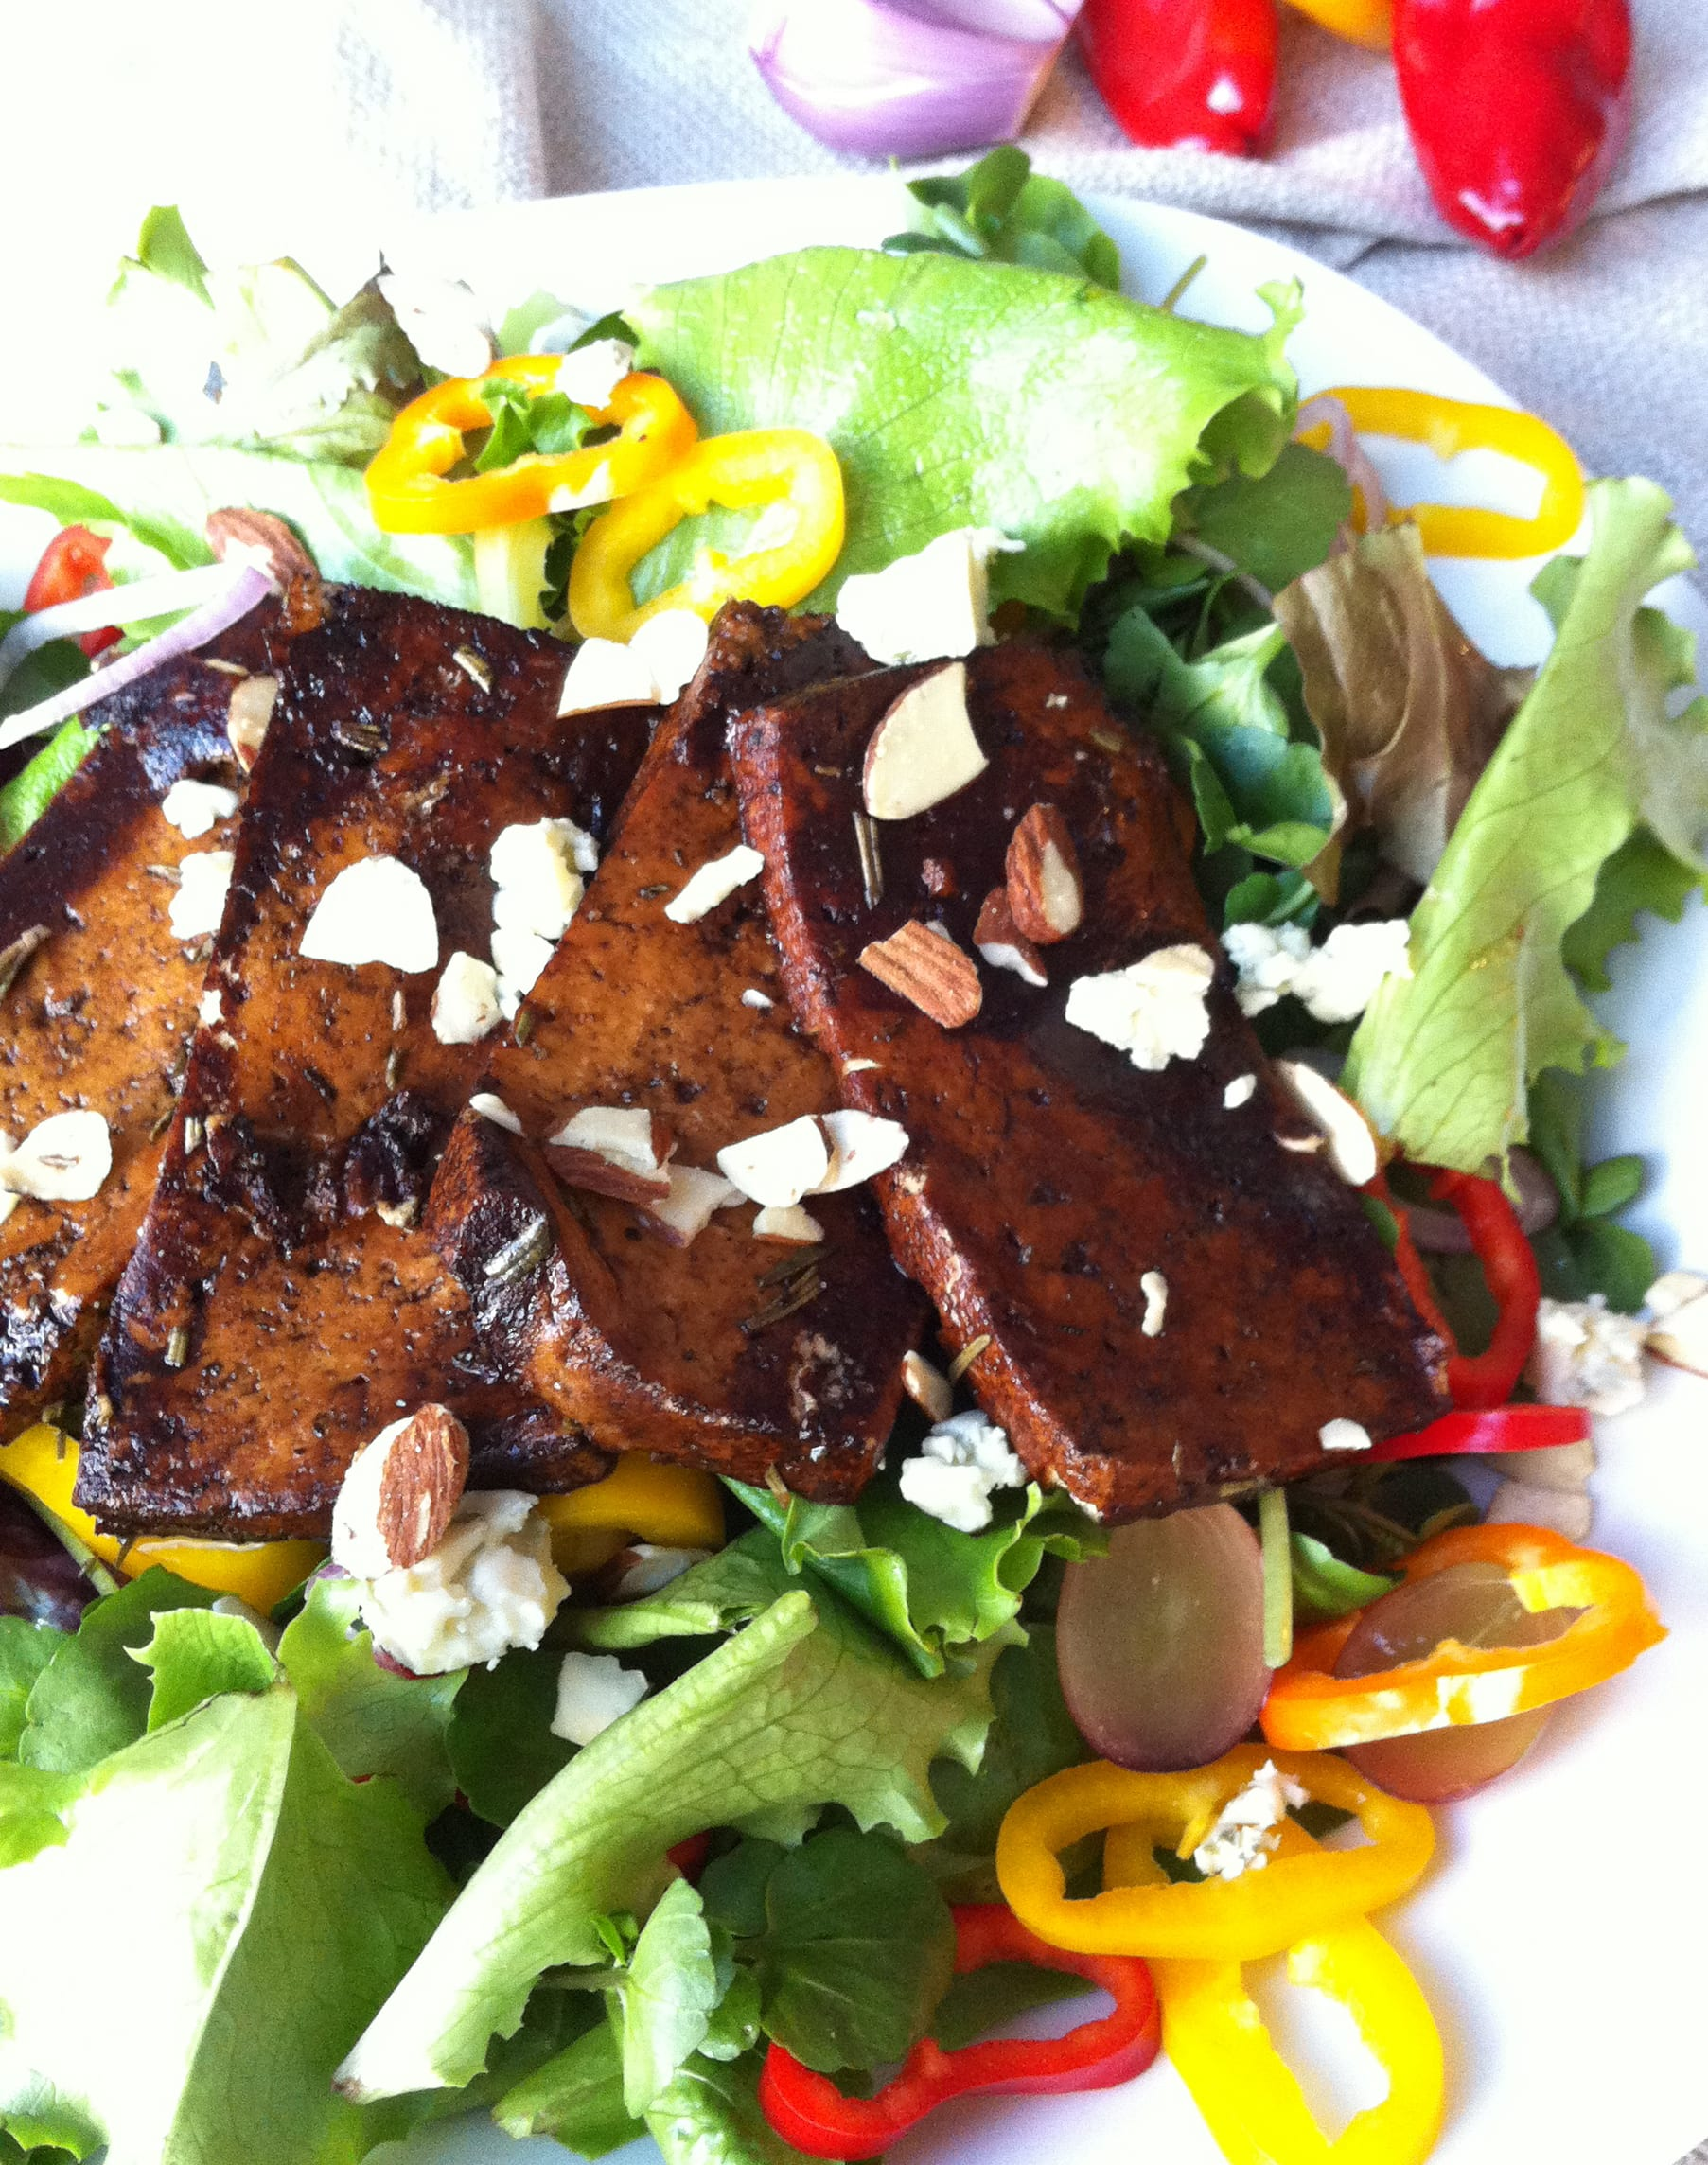 Marinated Tofu Salad with Sweet Balsamic Glaze